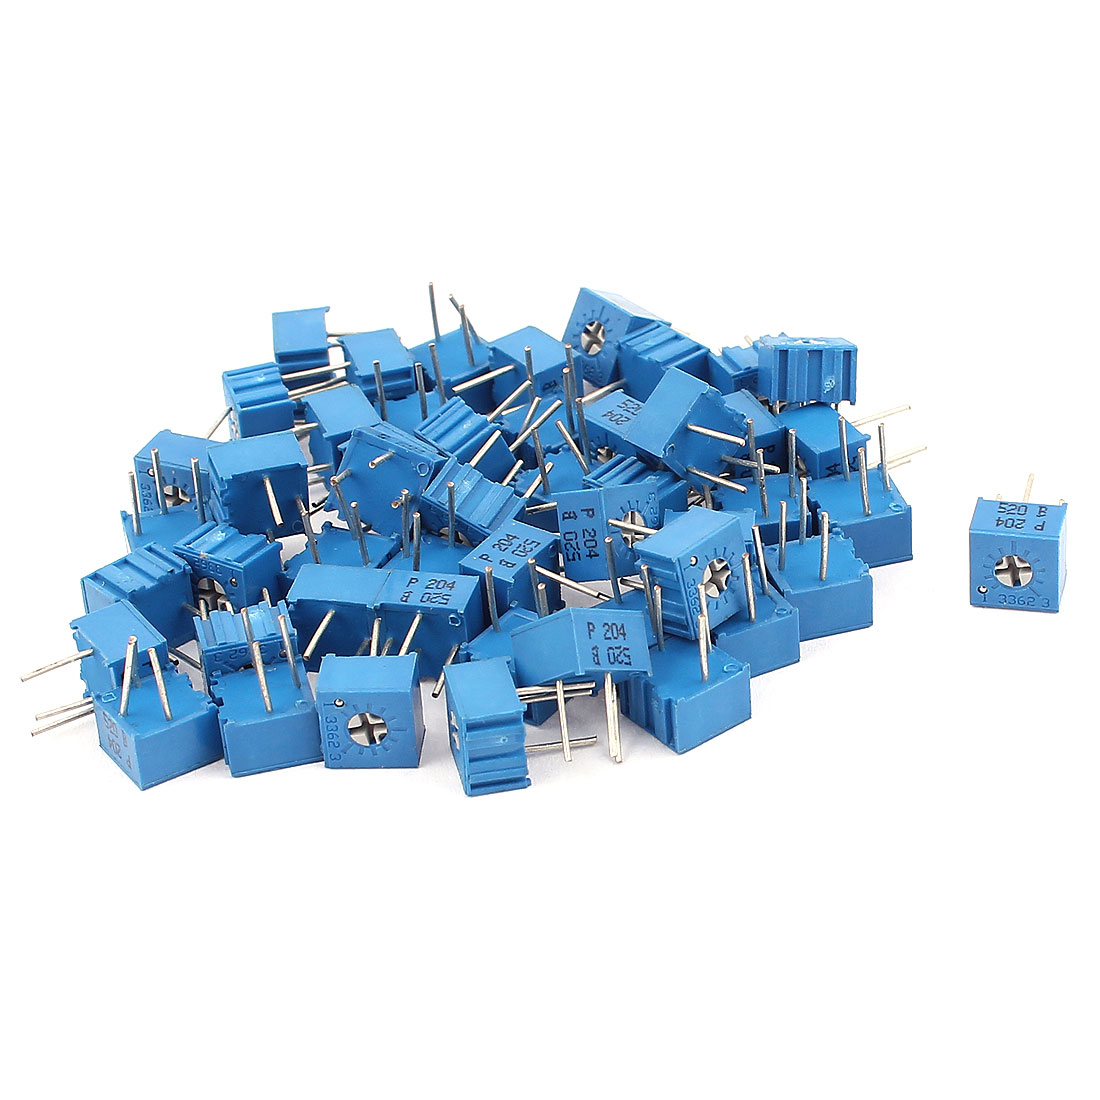 50Pcs Adjustable Potentiometer Trimmer Variable Resistor 3362P-204 200K Ohm